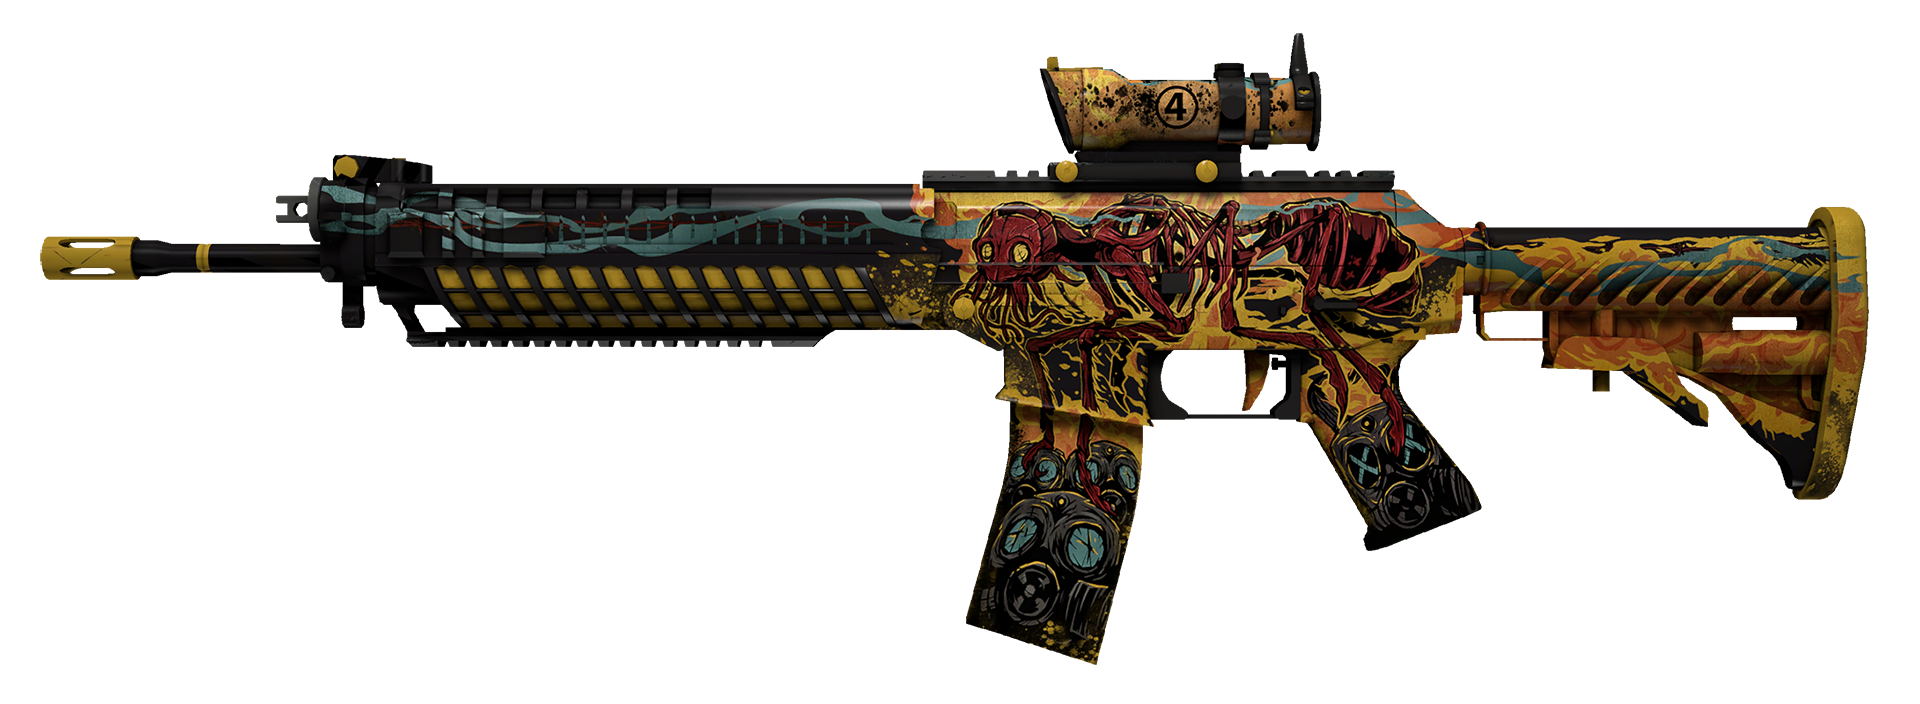 SG 553 Colony IV Large Rendering